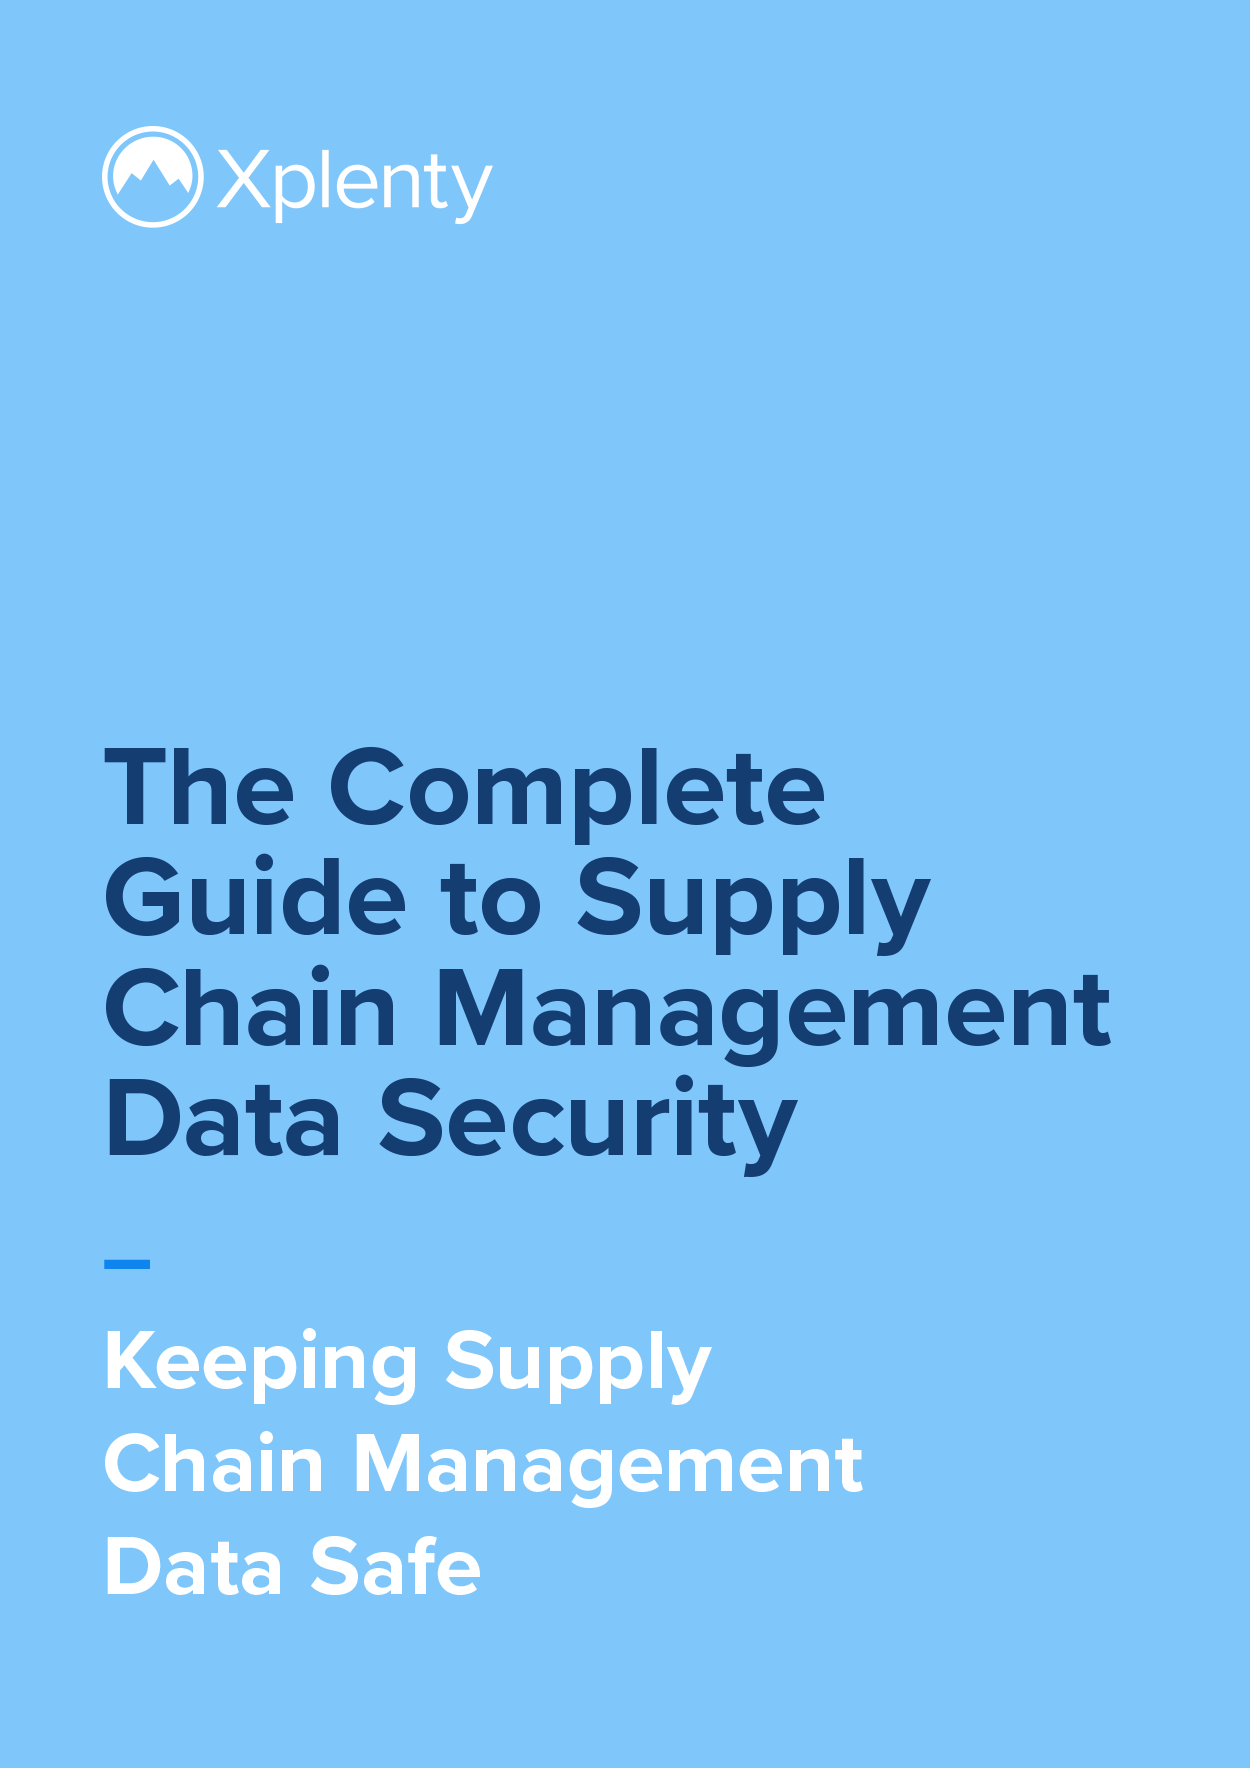 The Complete Guide to Supply Chain Management Data Security